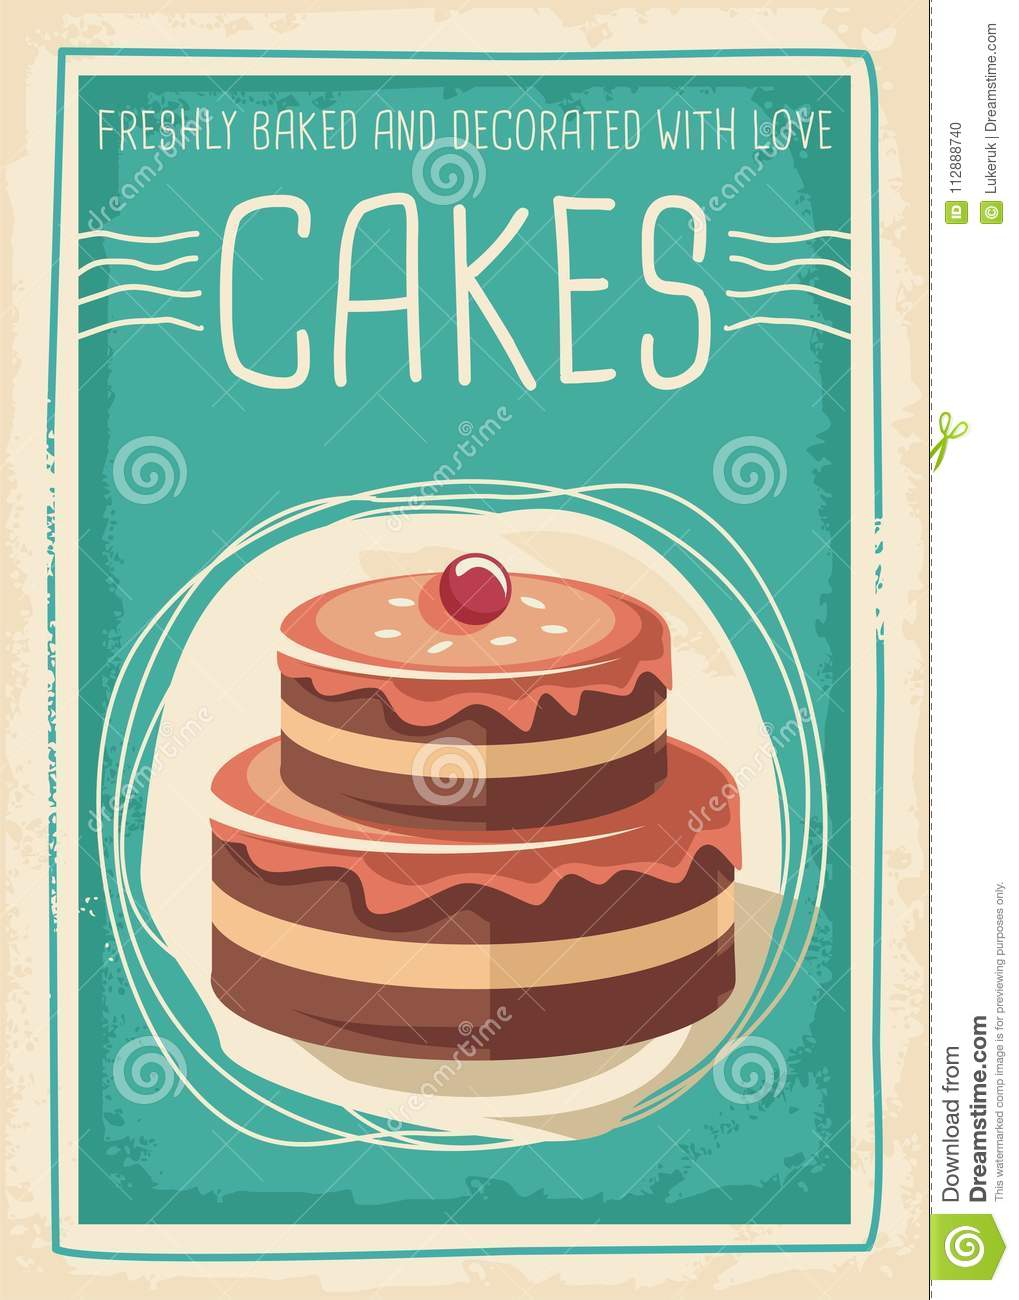 Cakes And Sweets Retro Poster Design Stock Vector ...